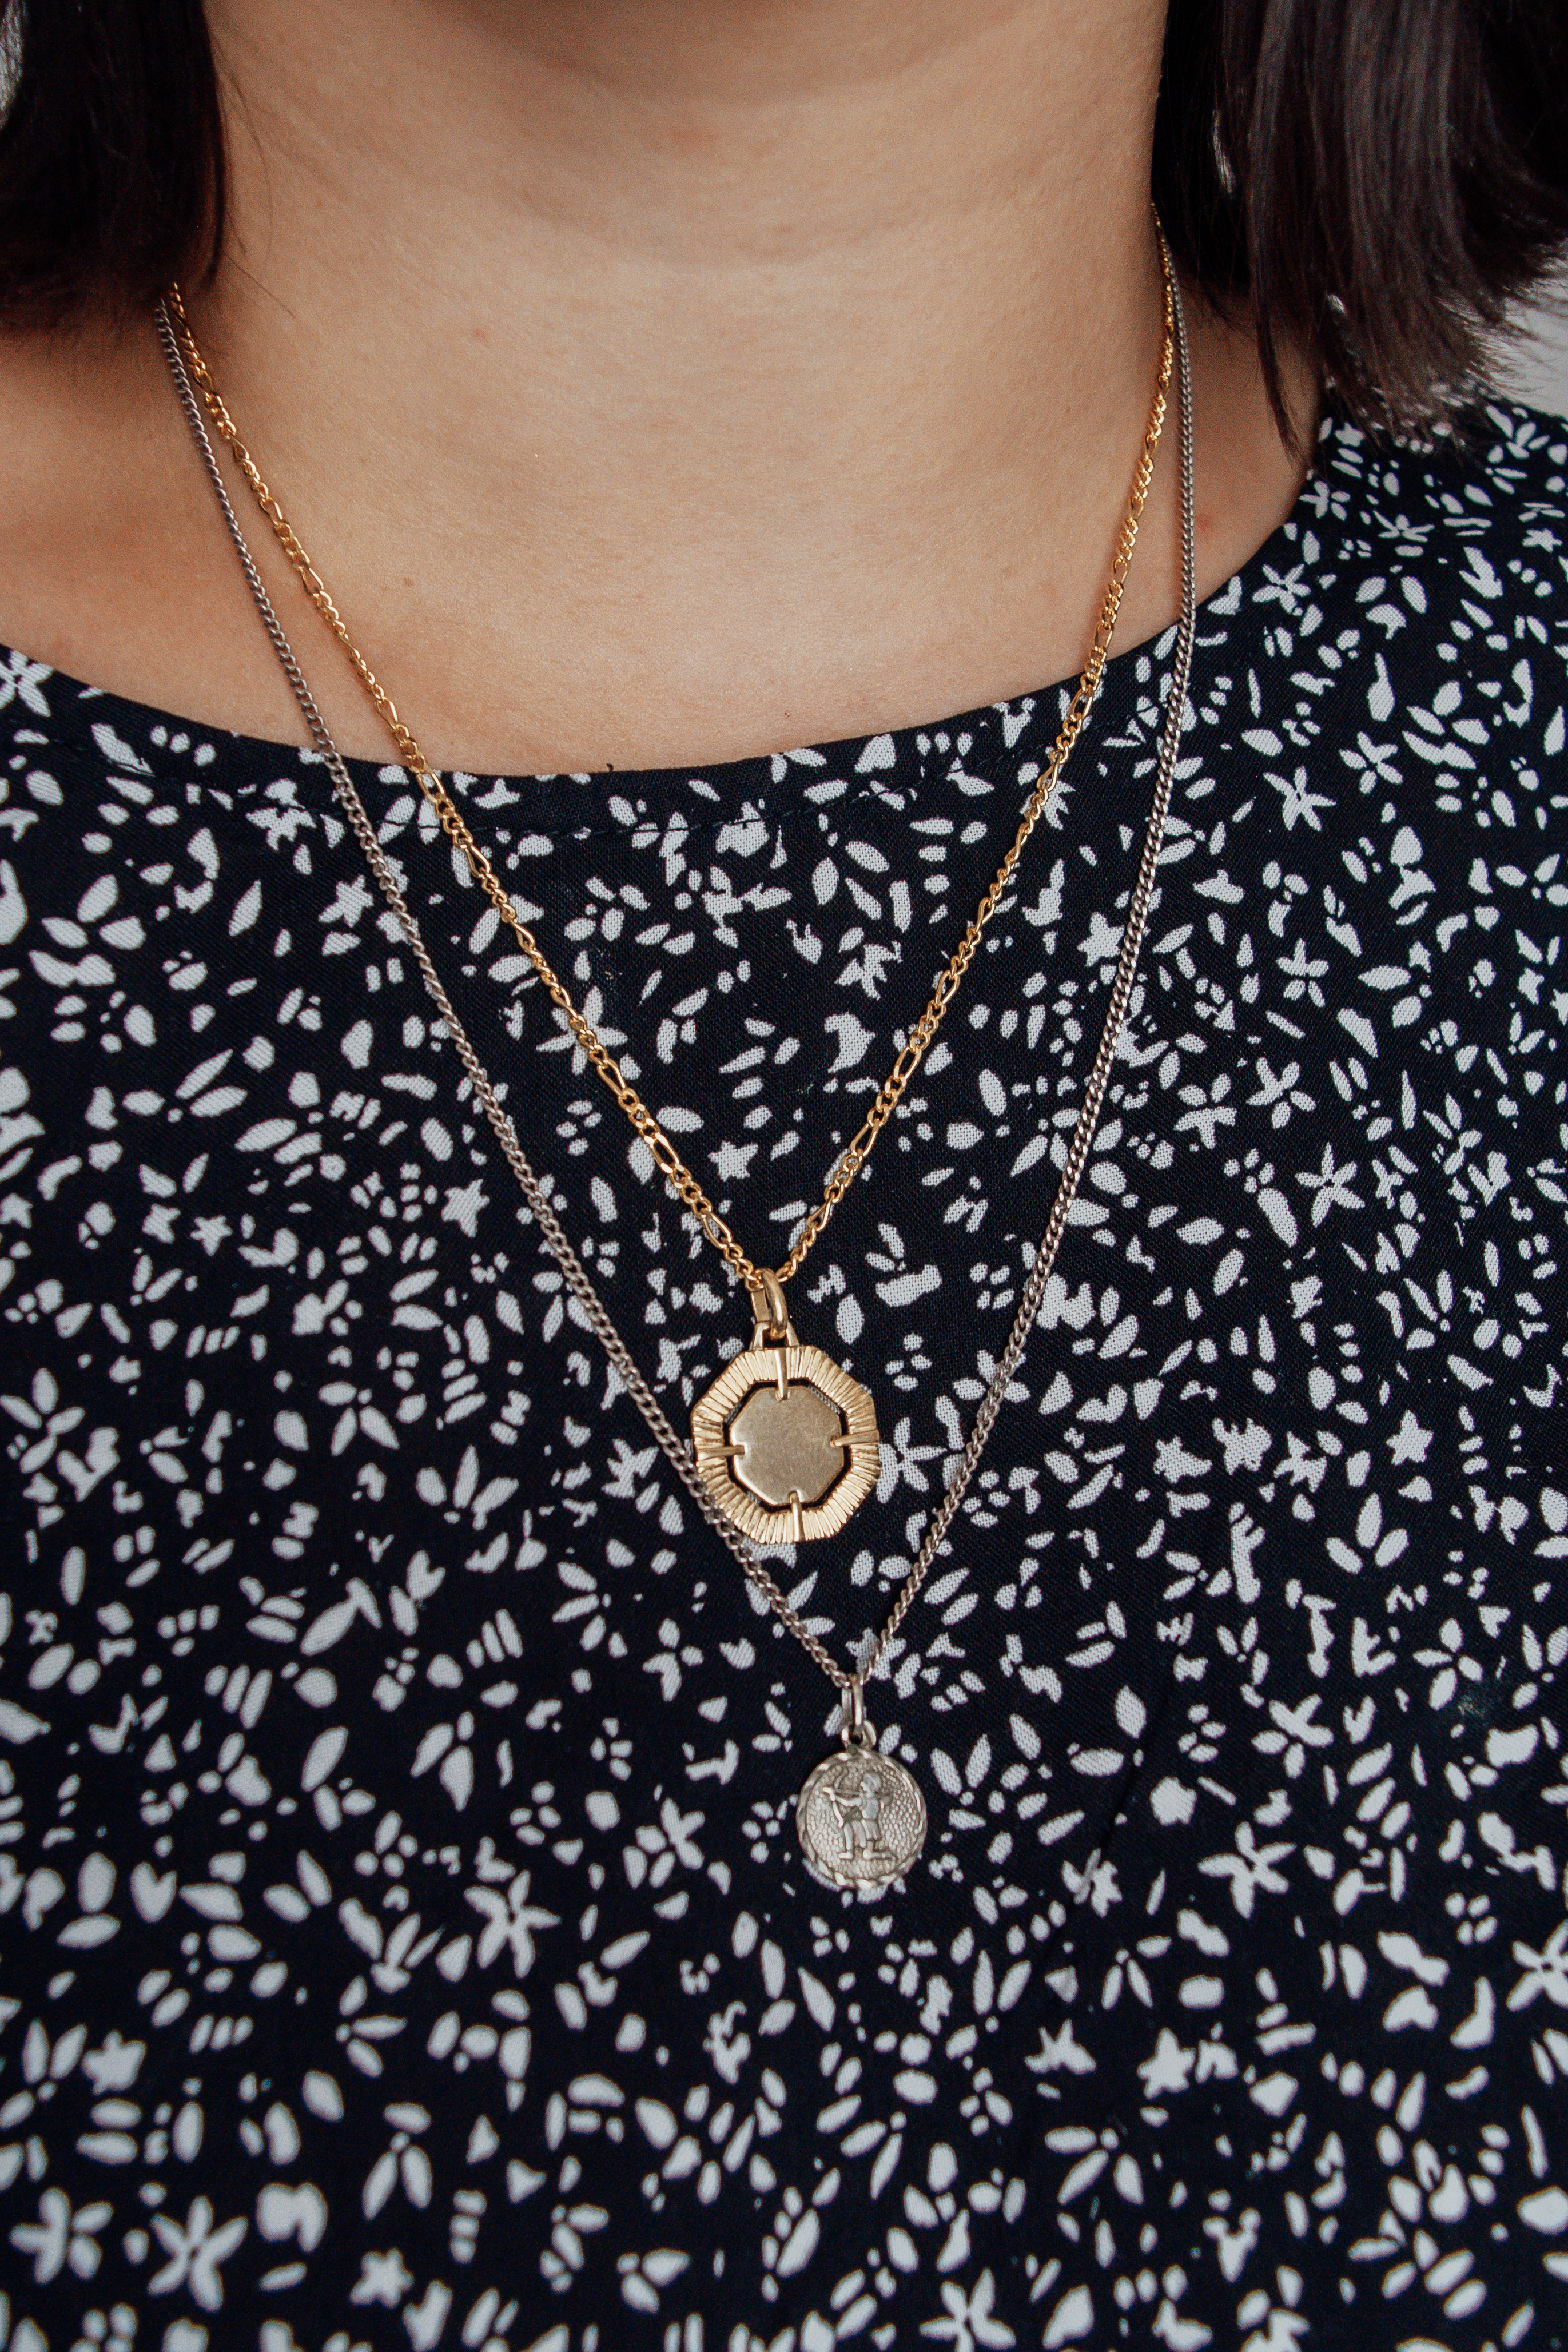 Layered gold and silver medallion necklaces